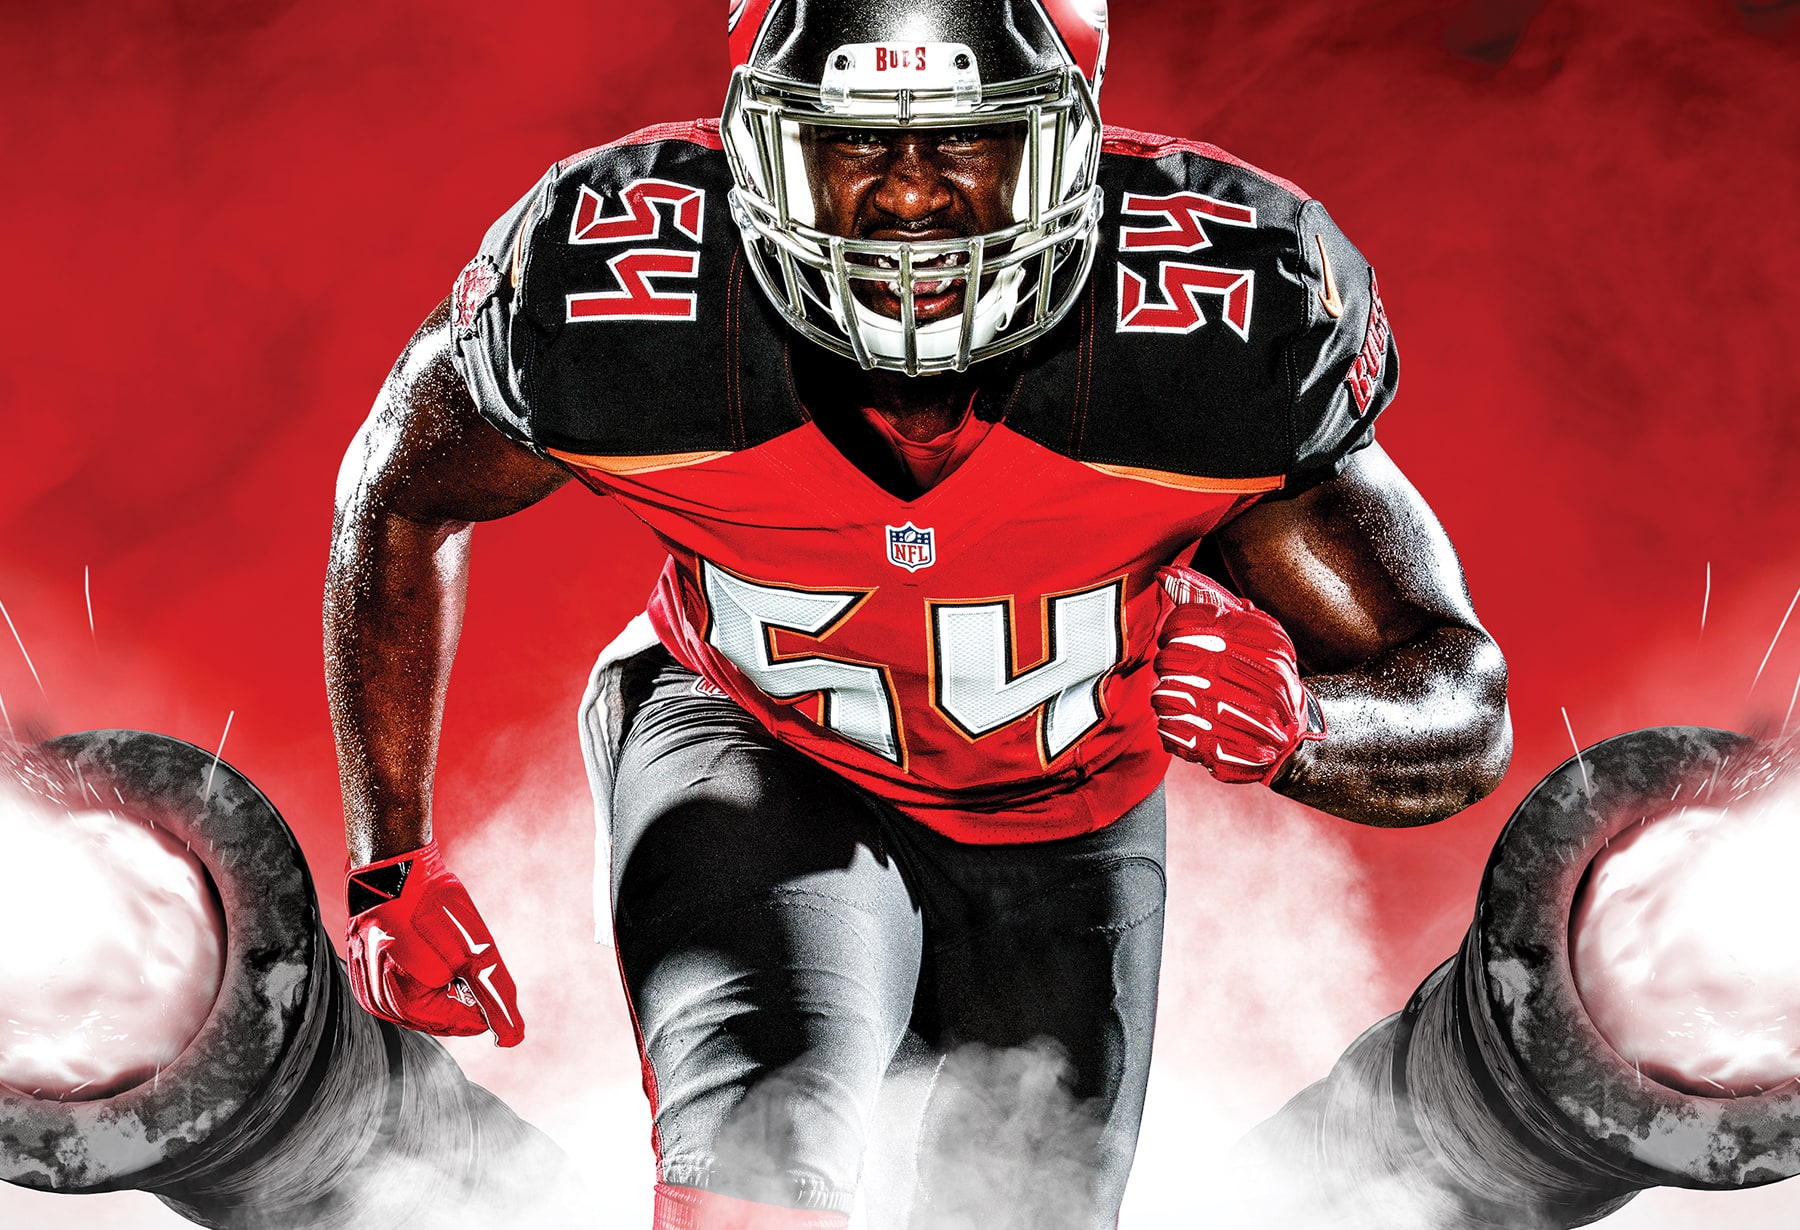 Sample creative asset for the Tampa Bay Buccaneers Siege the Day campaign